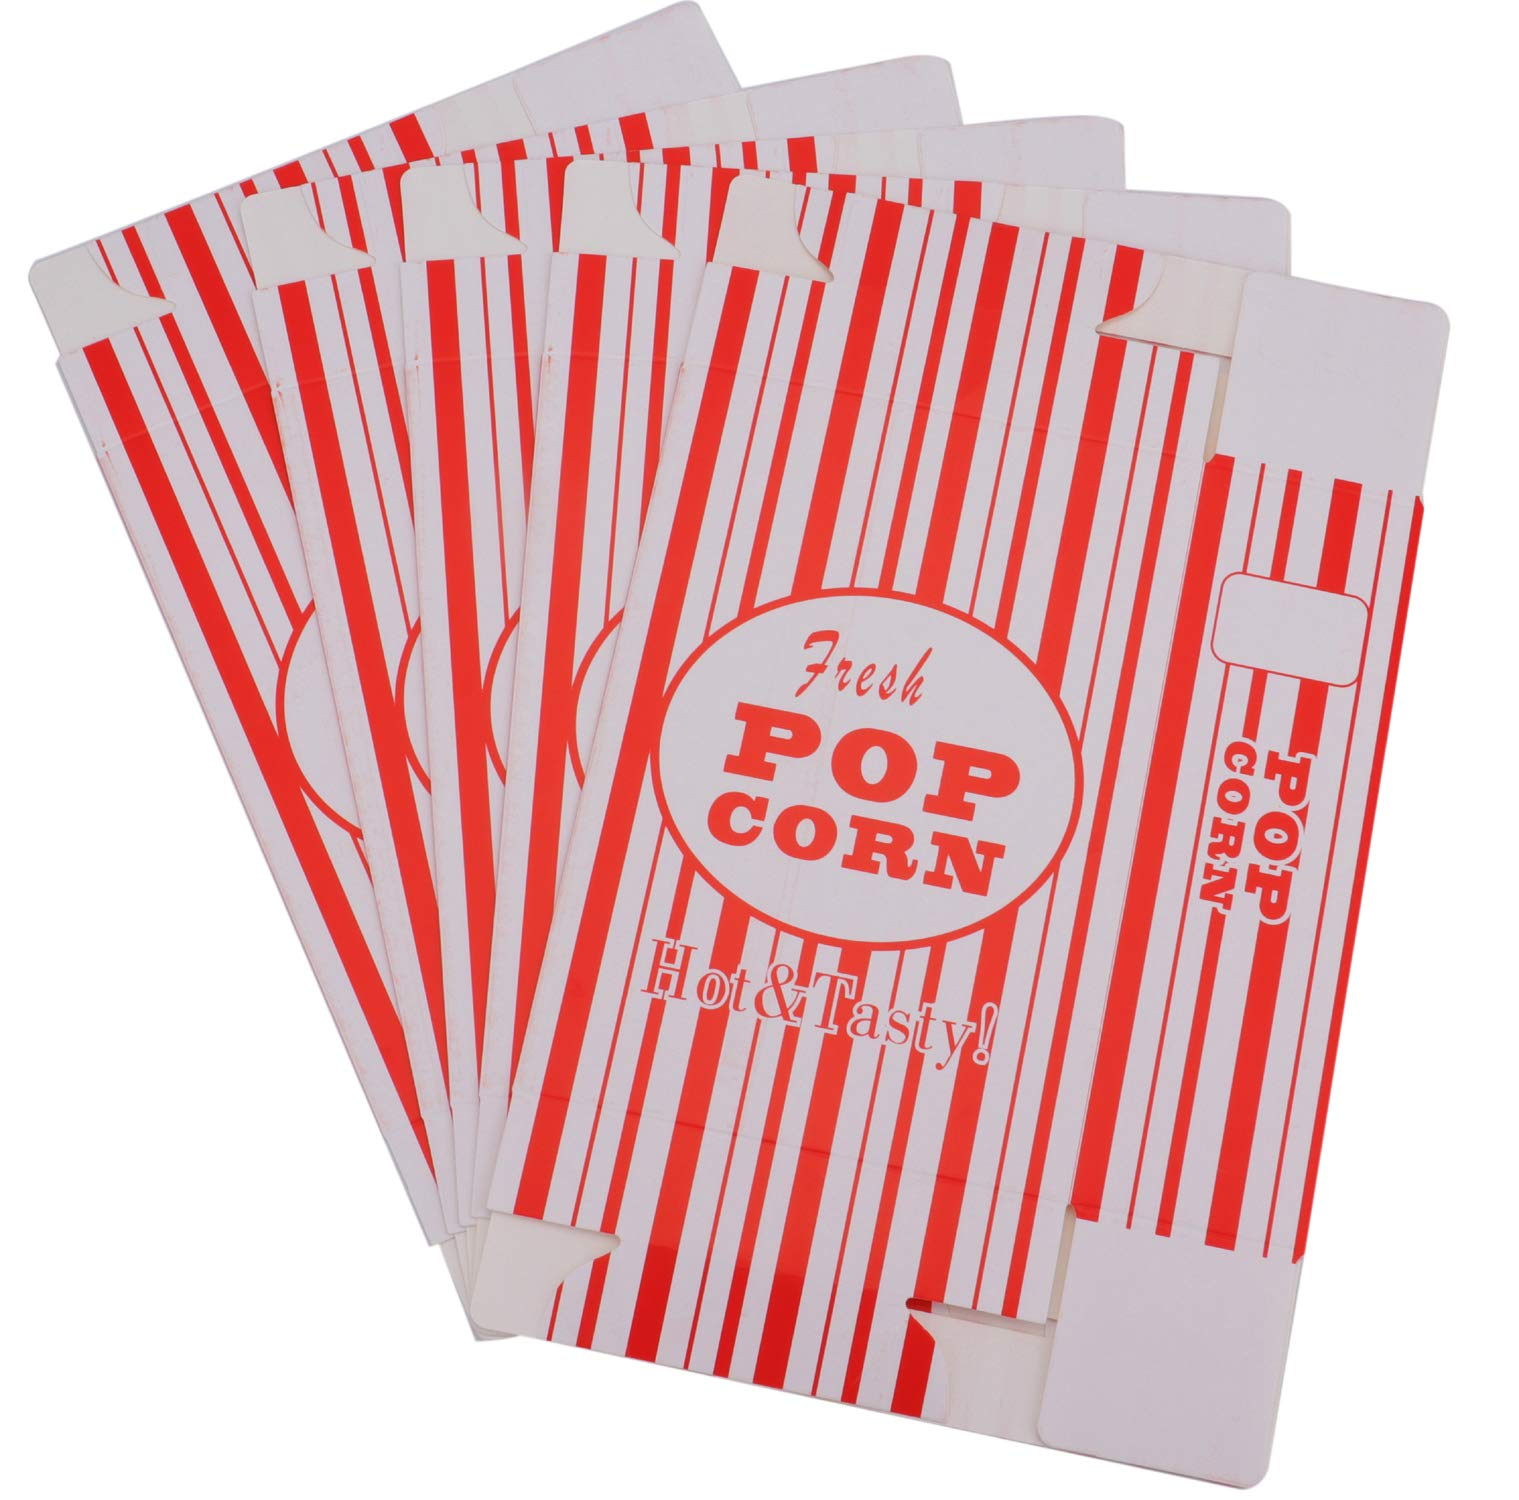 Bekith 100/Case Close-Top Popcorn Box, Red and White Stripes Classic Design by Bekith (Image #5)